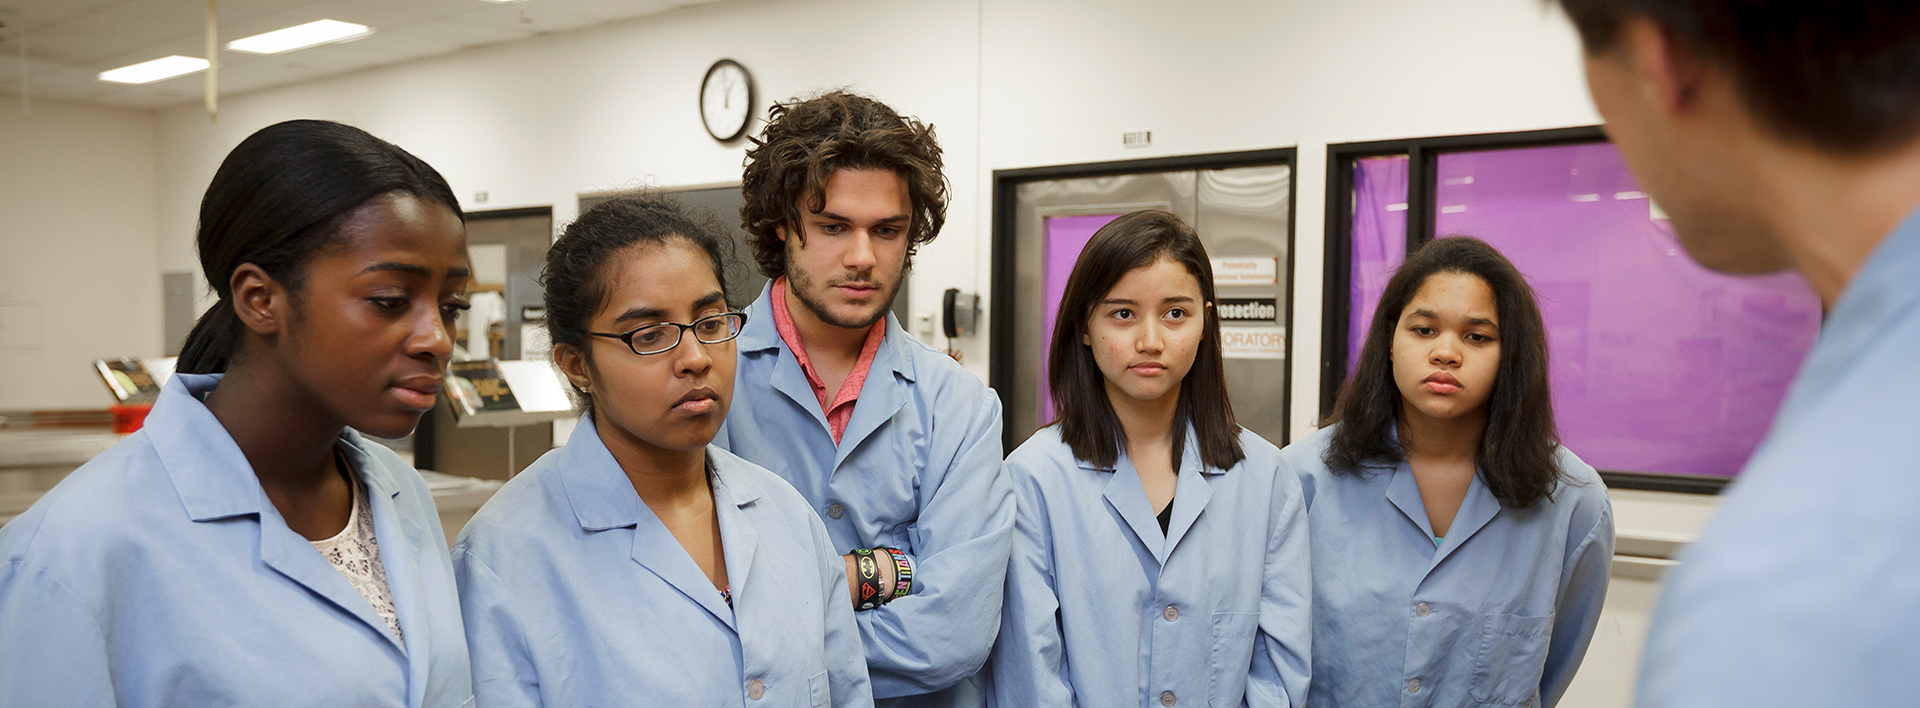 students in a lab at the CUNY School of medicine, CCNY